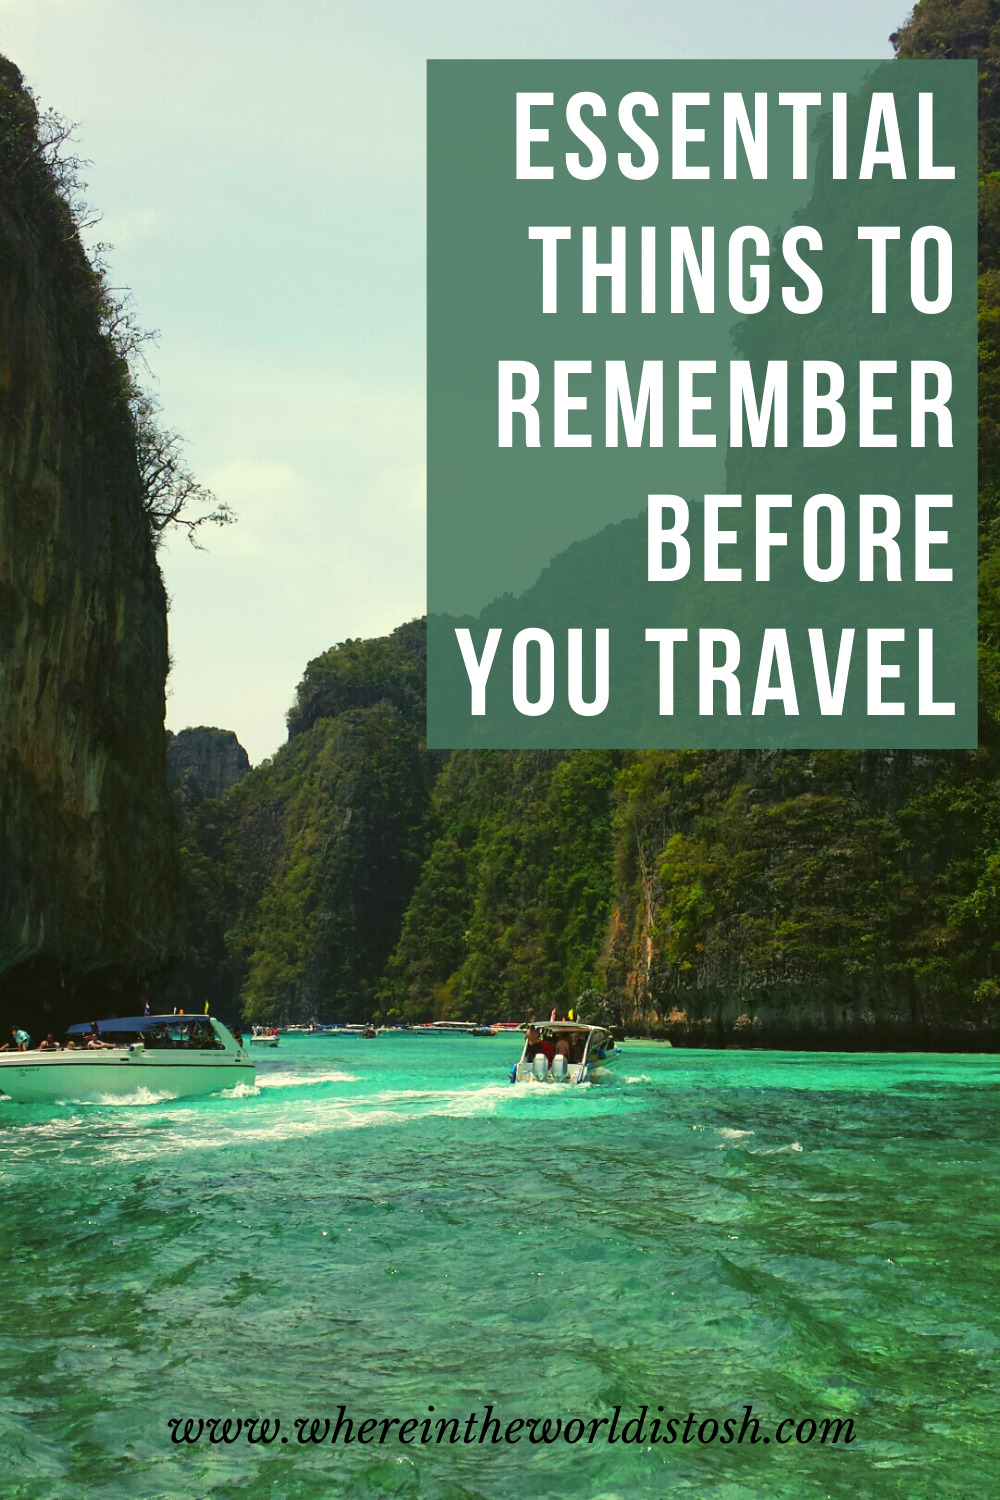 Essential Things To Remember Before You Travel